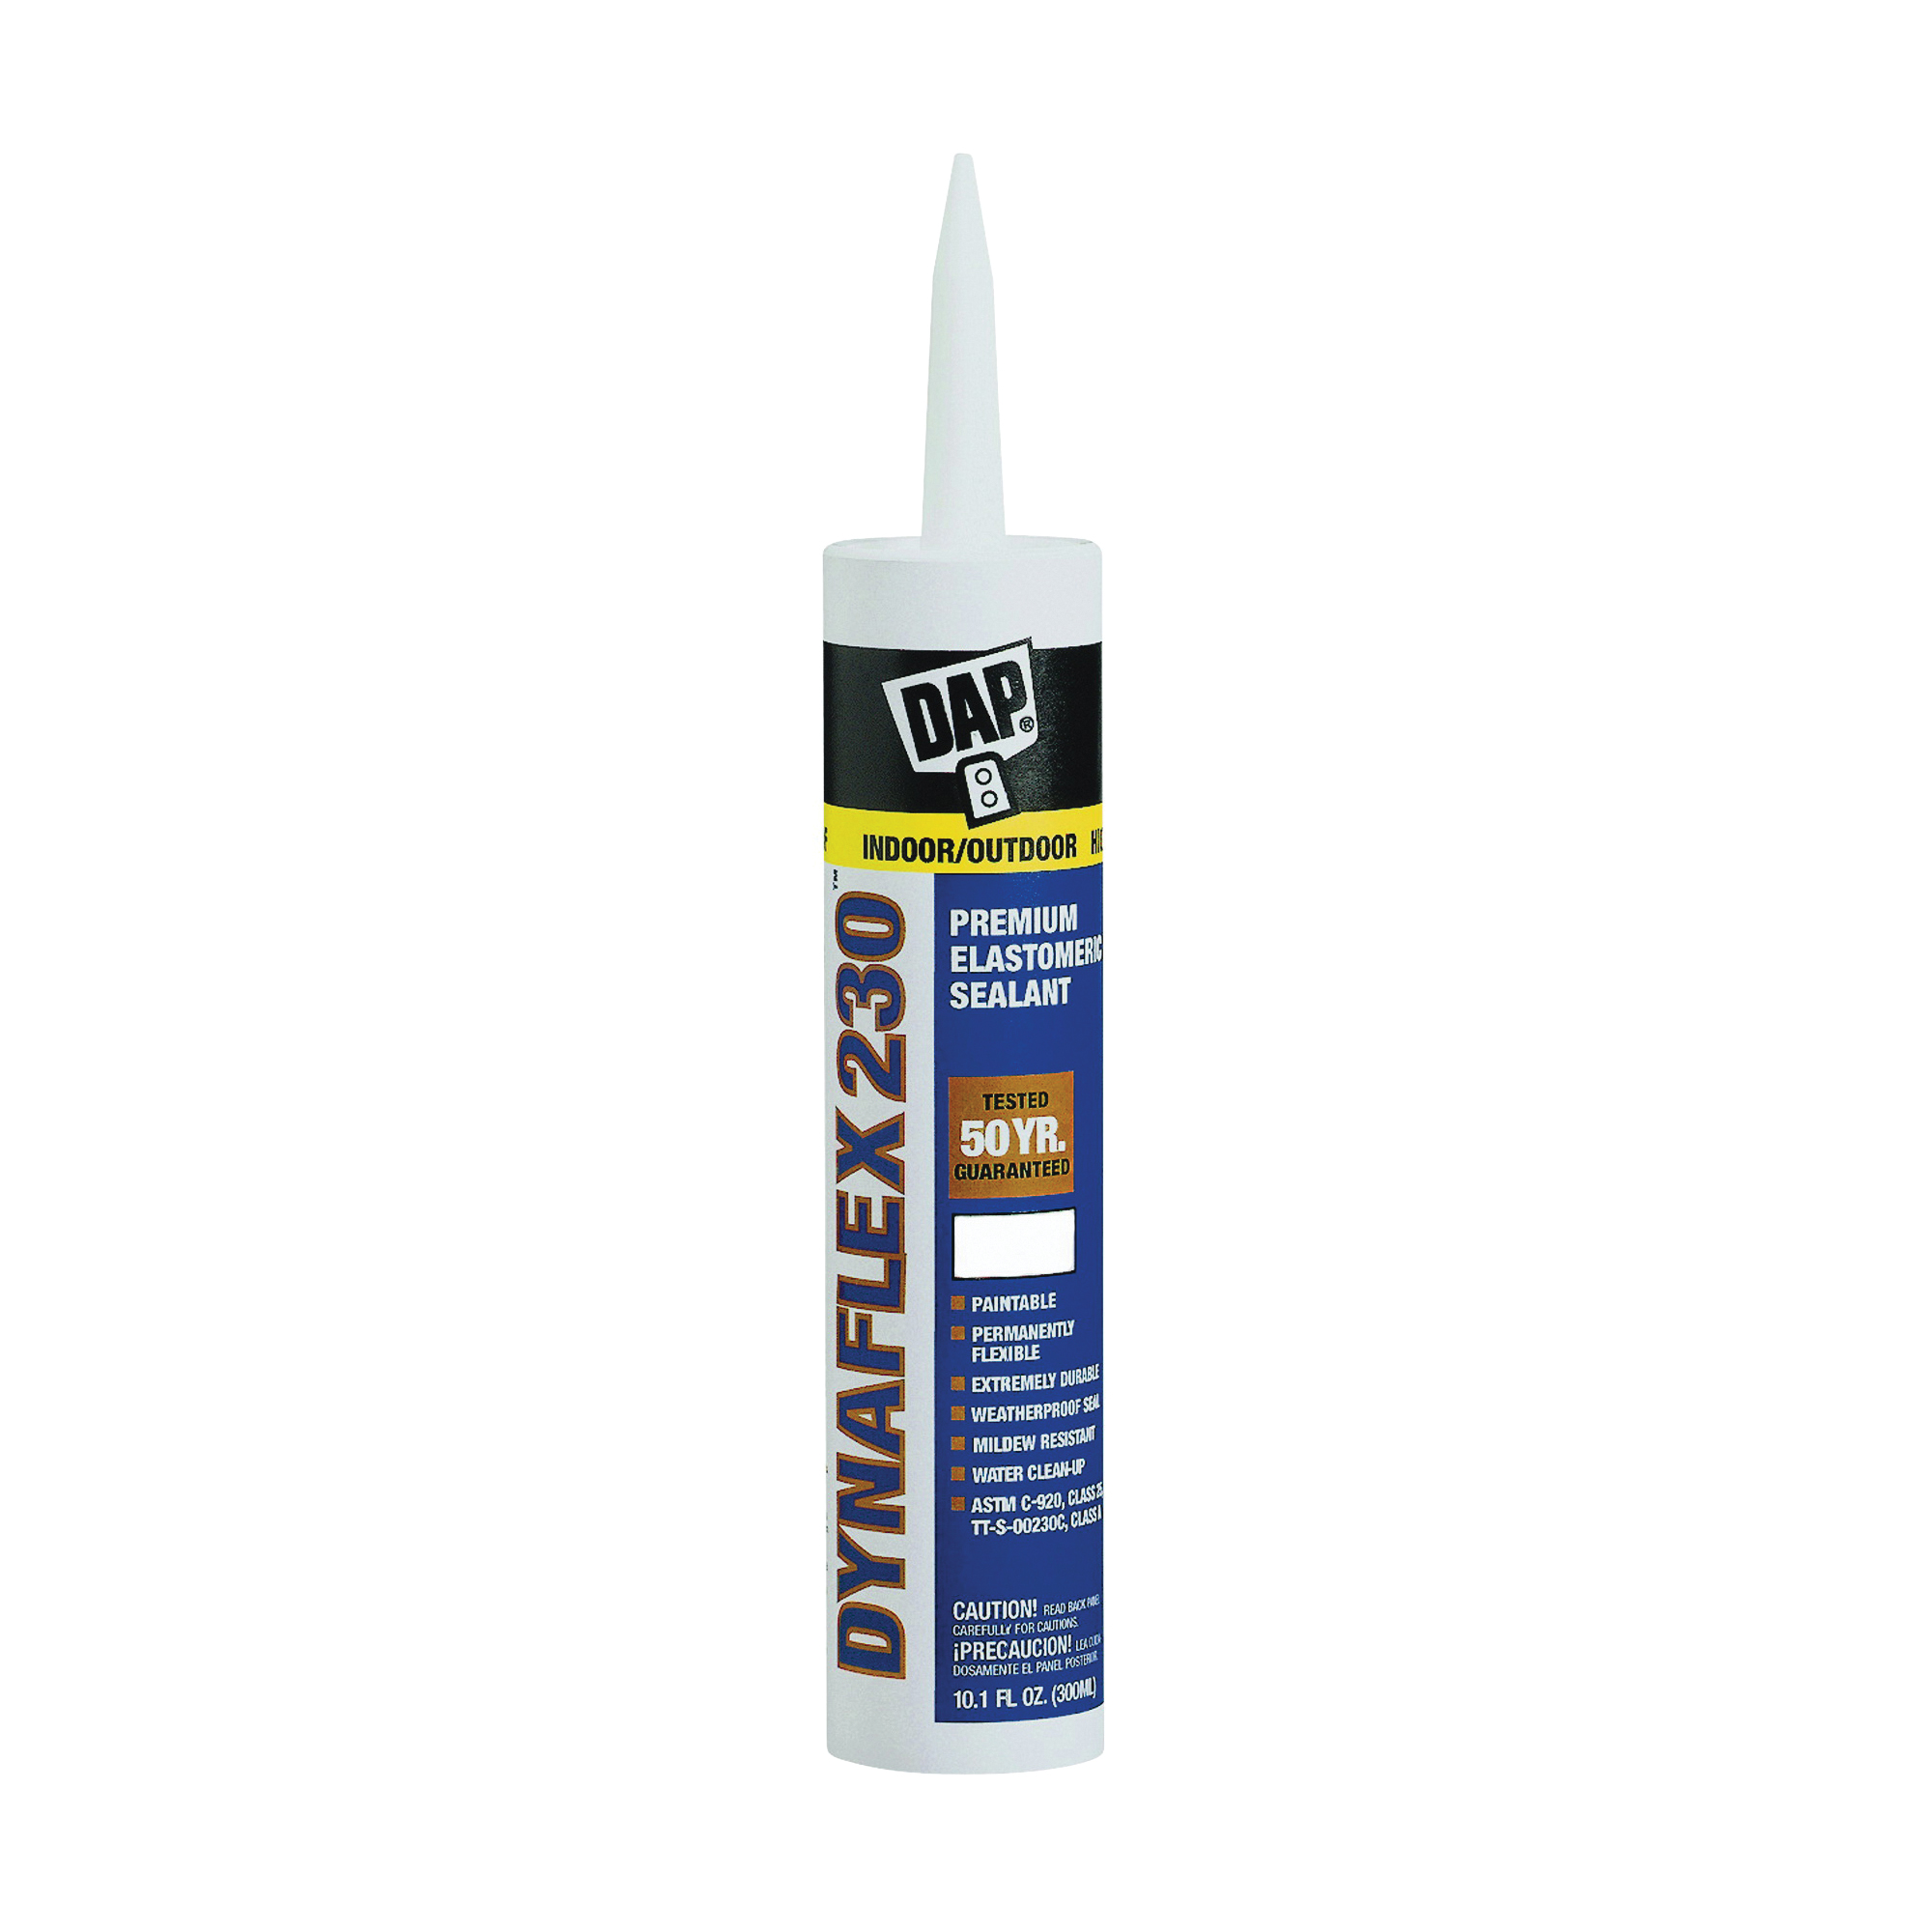 Picture of DAP 18418 Premium Sealant, Brown, 1 day Curing, 40 to 100 deg F, 10.1 oz Package, Cartridge